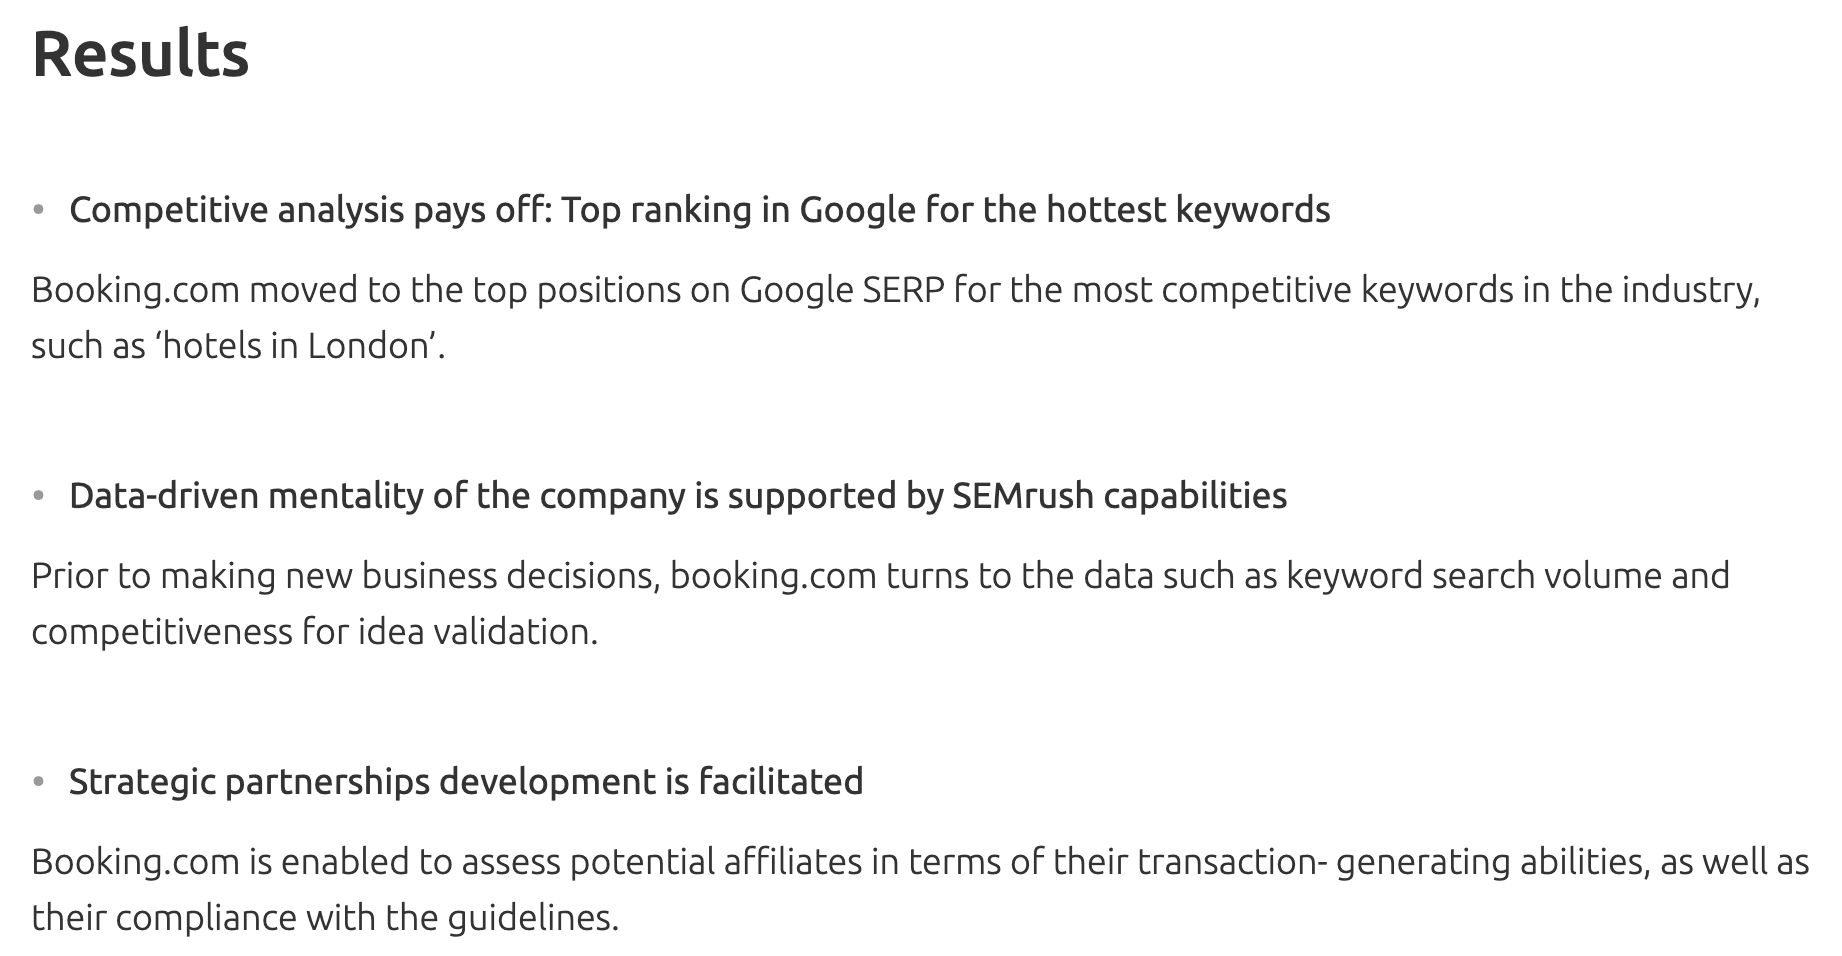 SEMrush Results